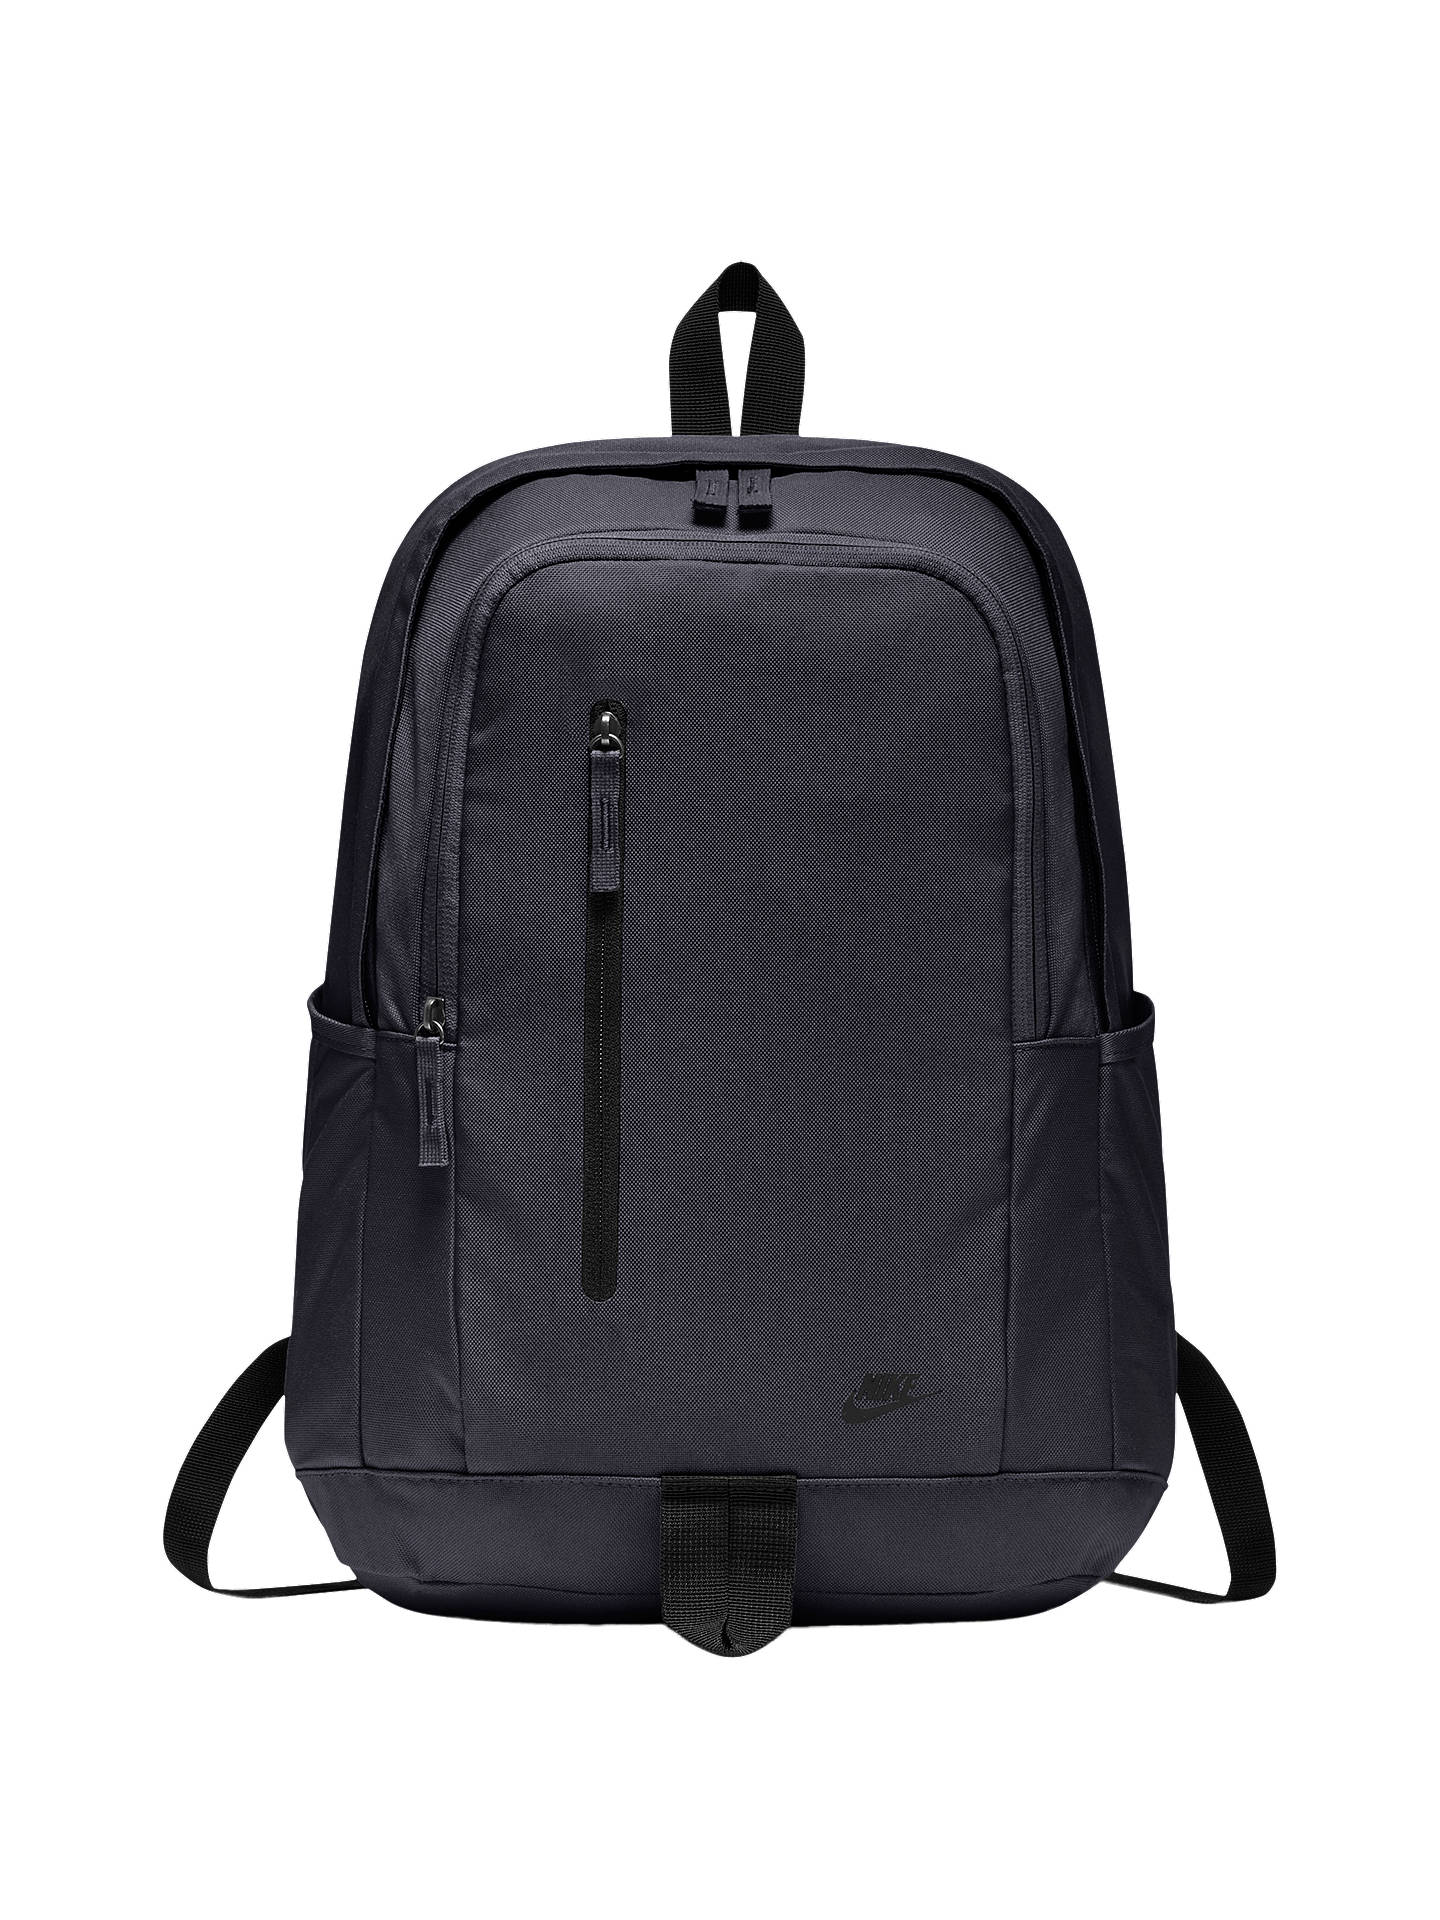 5e6908efc9 Nike All Access Soleday Backpack at John Lewis   Partners